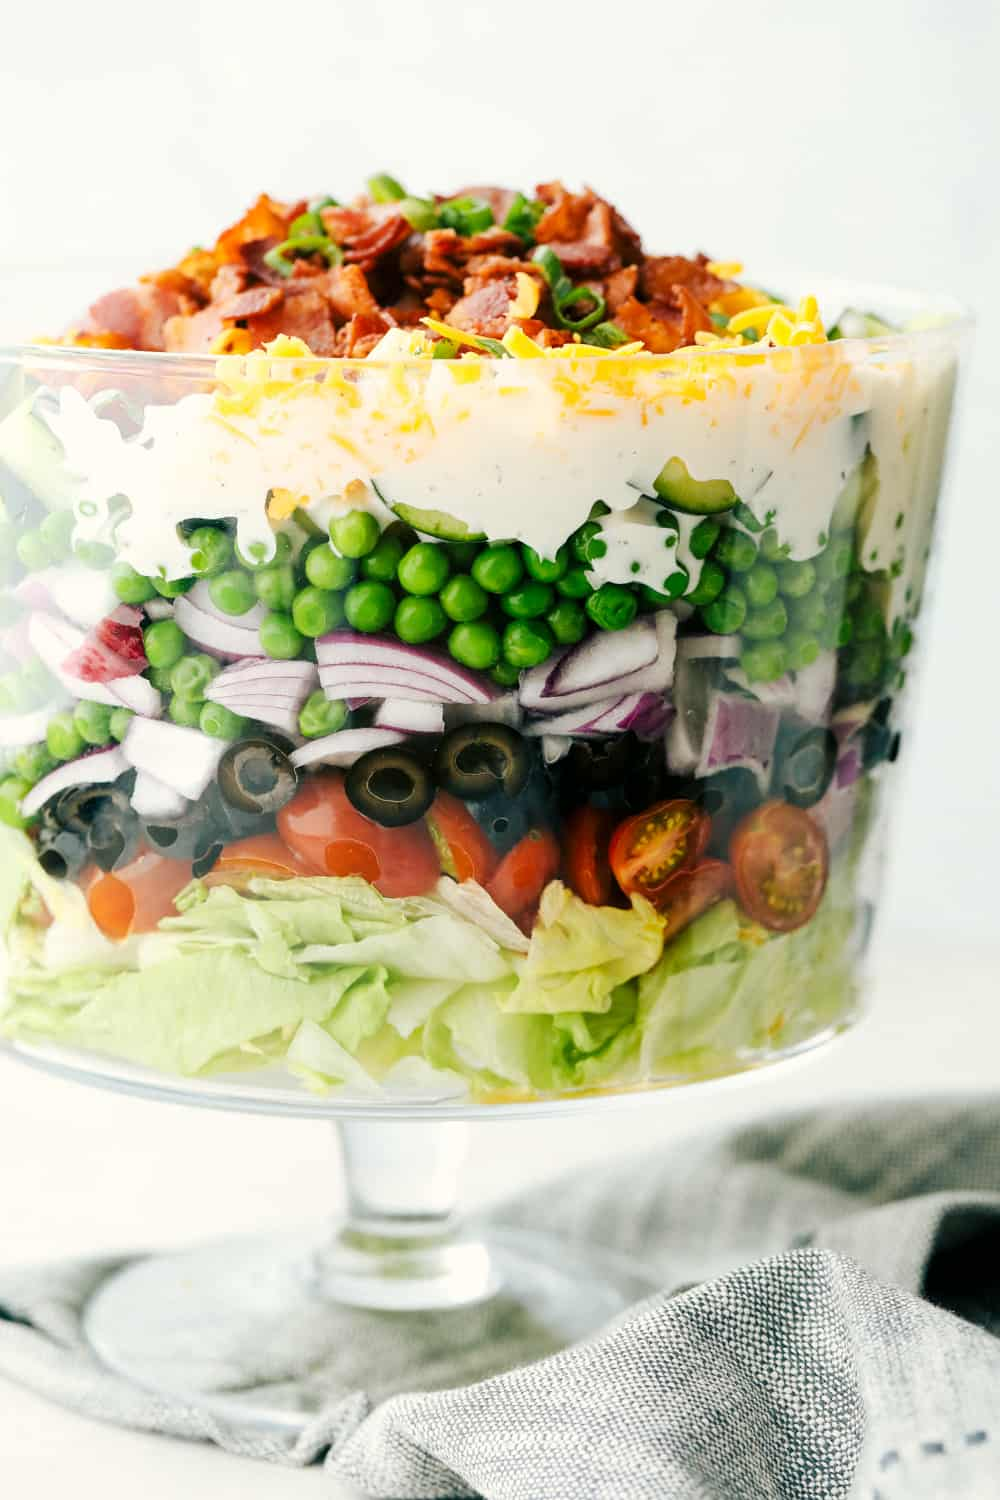 7 Layer salad with lettuce, peas and topped with bacon.